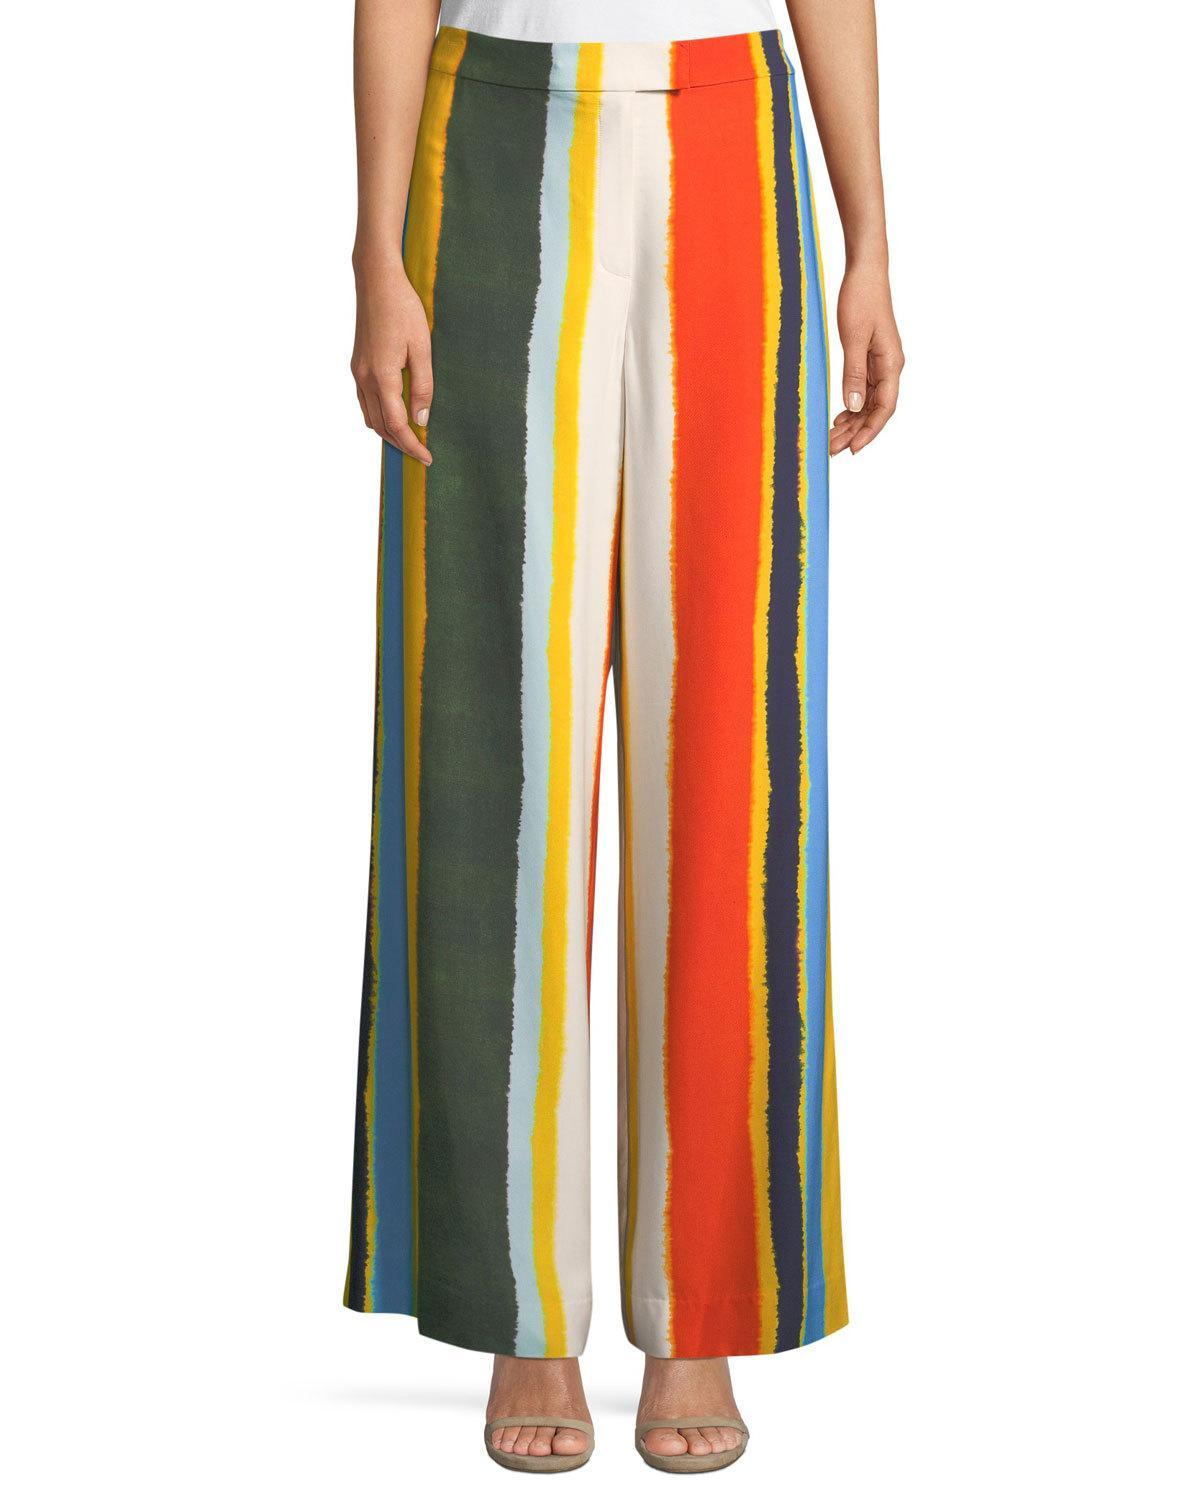 1a6a31426b9b5 TORY BURCH Stephanie Beach Cotton-Voile Tie-Dye Kaftan in Multicoloured. Tory  Burch Fiona Striped Twill Wide-Leg Pants In Green